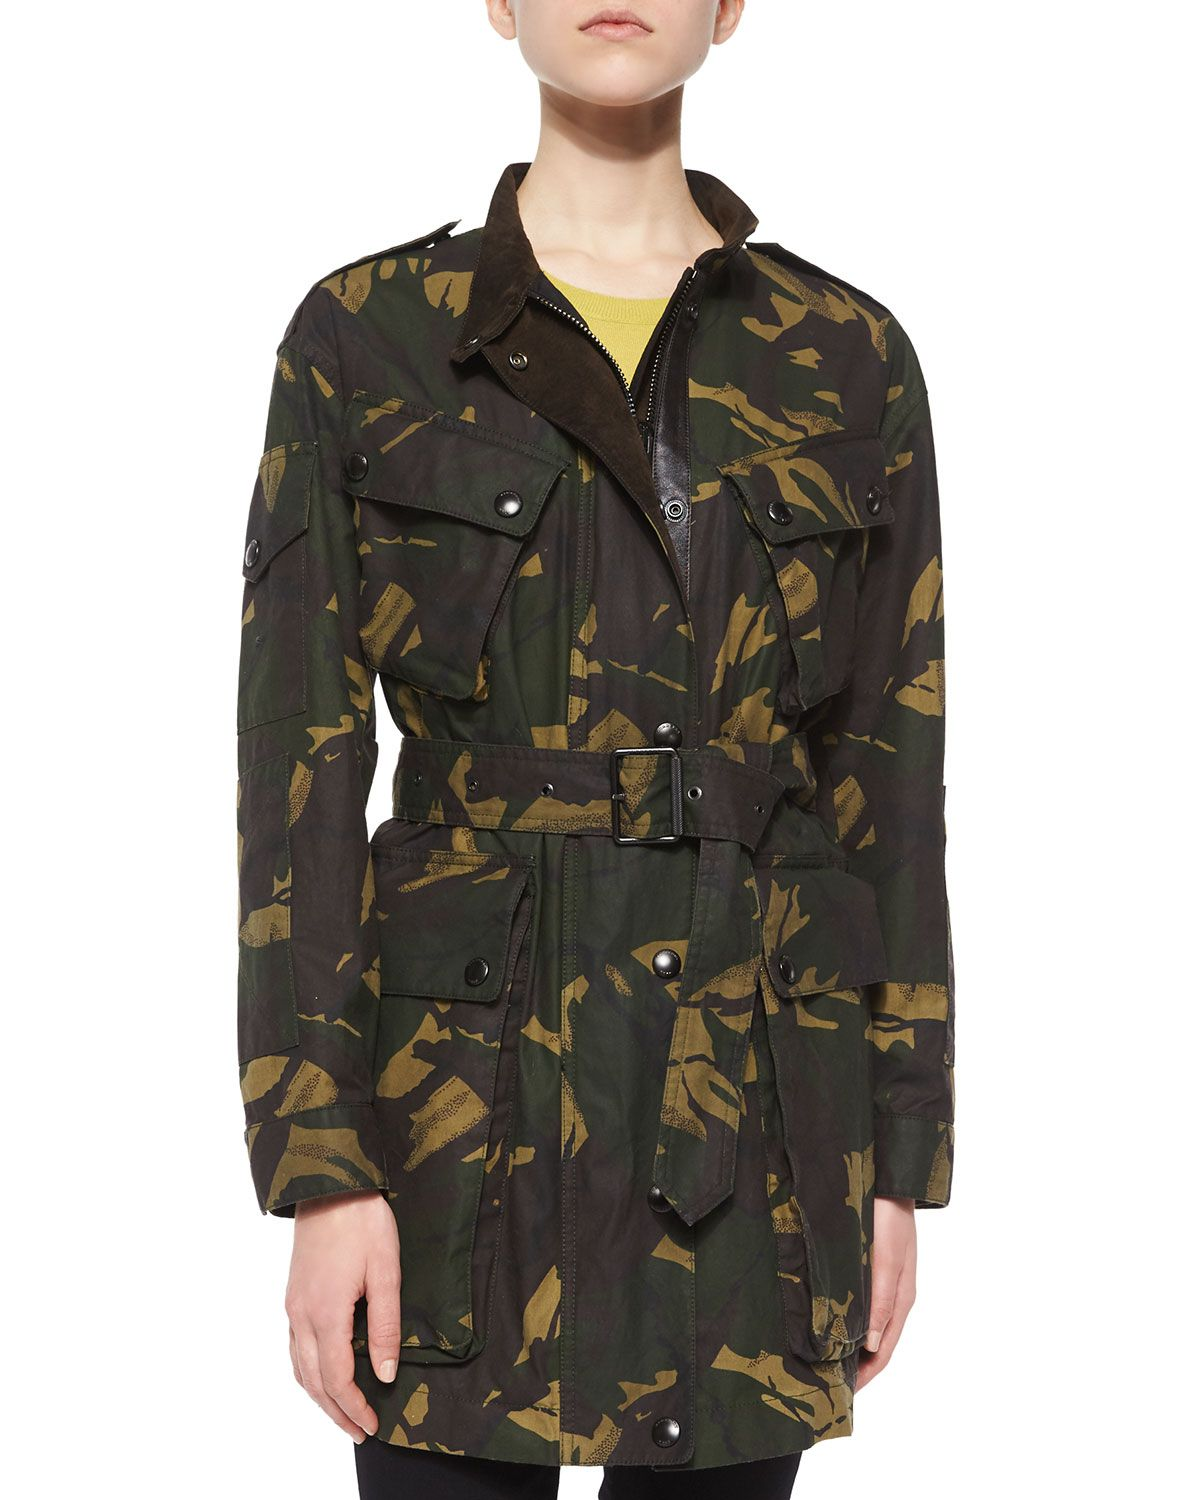 36b7bdcd98650 Tomsdale Oversized Four-Pocket Trench Coat, Women's, Size: 8, Forest Green  Camo - Burberry Brit